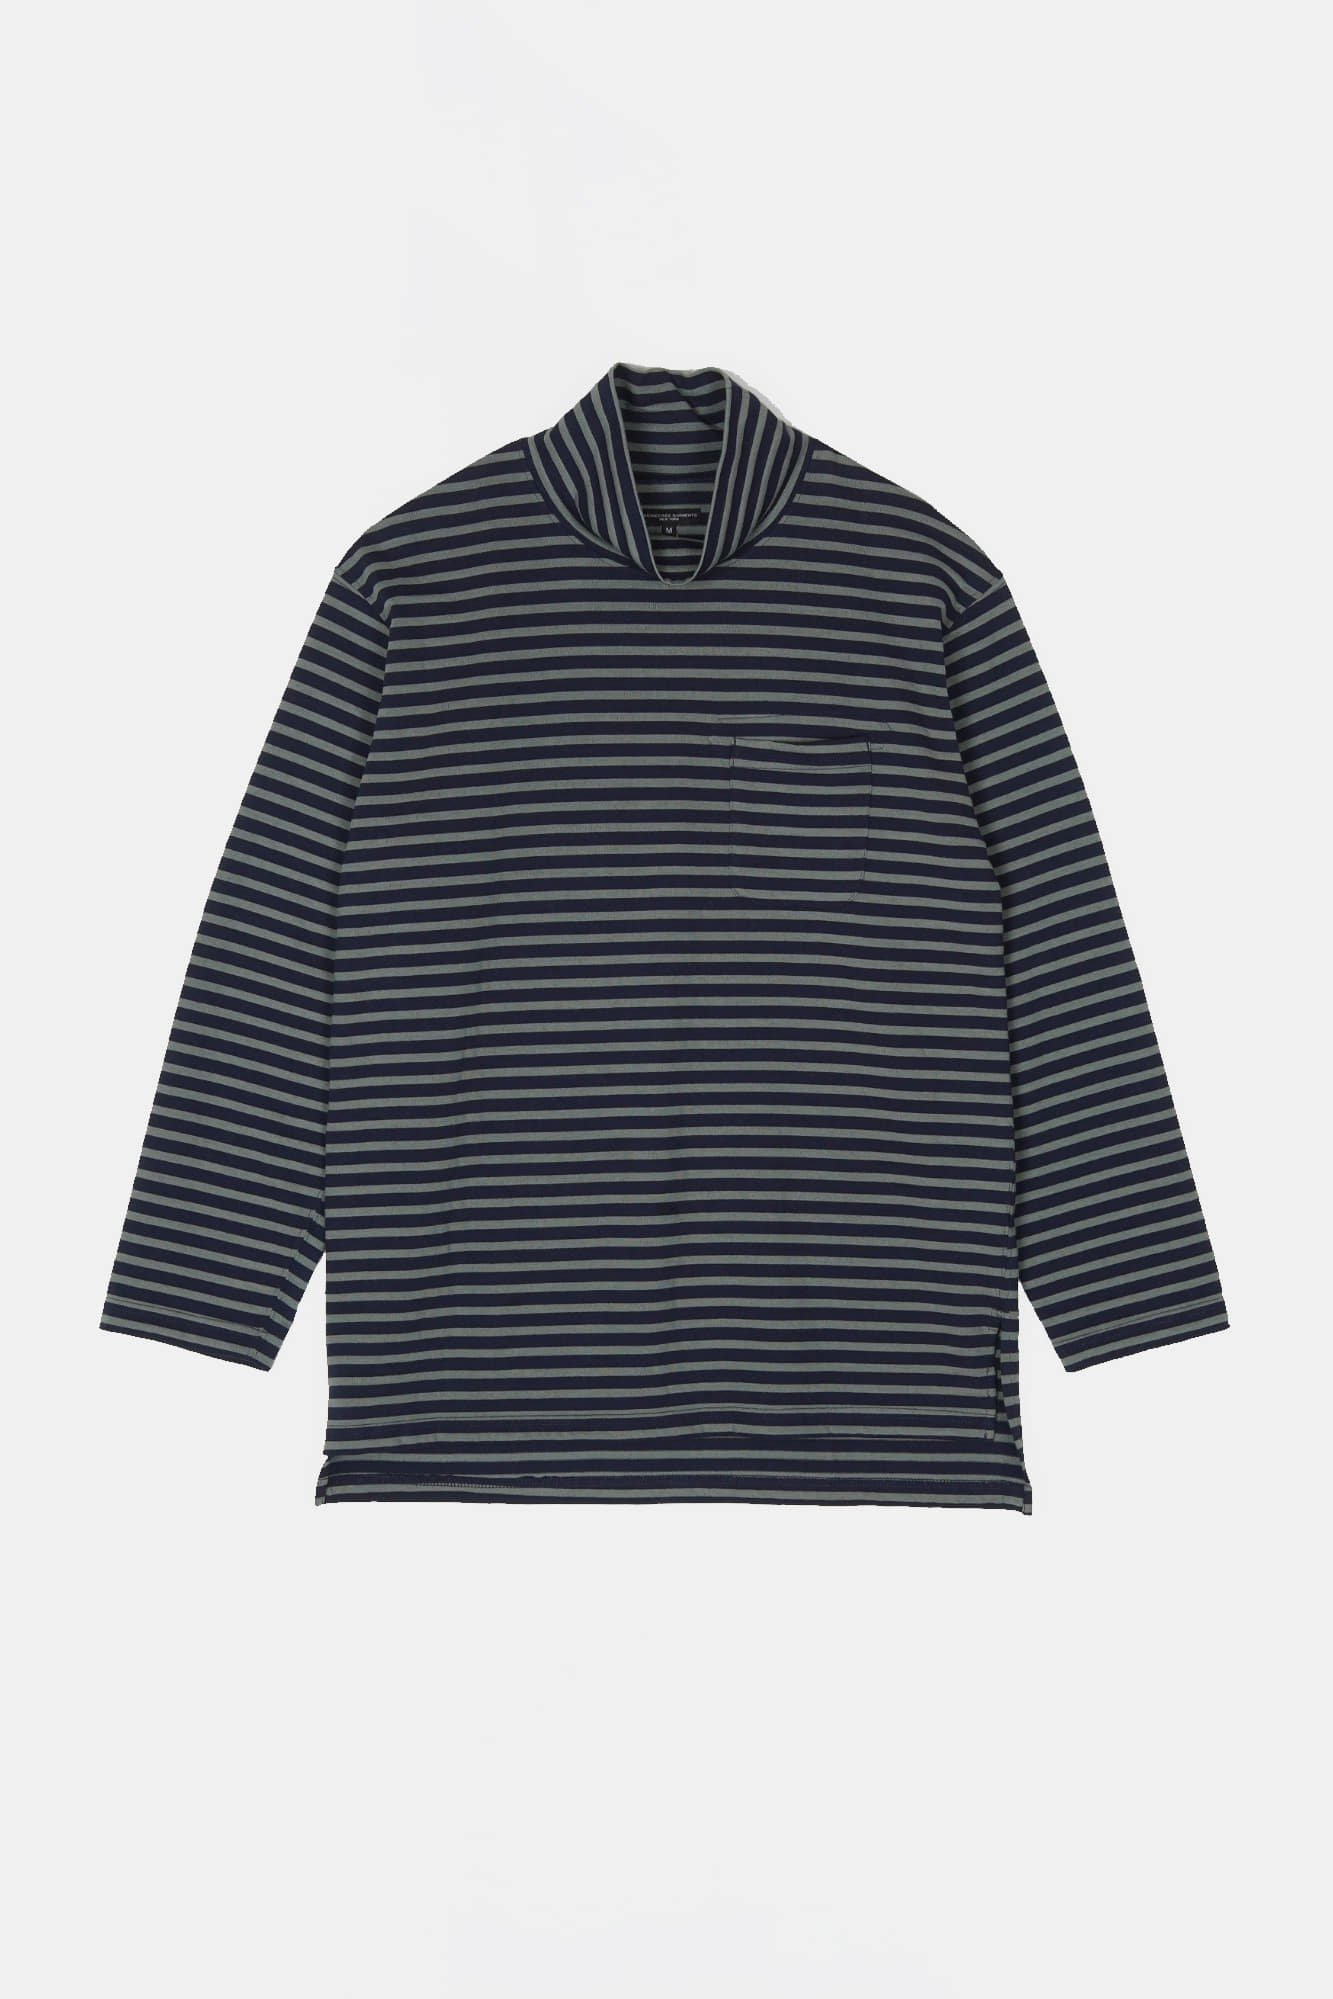 "ENGINEERED GARMENTS Mock Turtle ""Olive/Navy PC Stripe Jersey"""